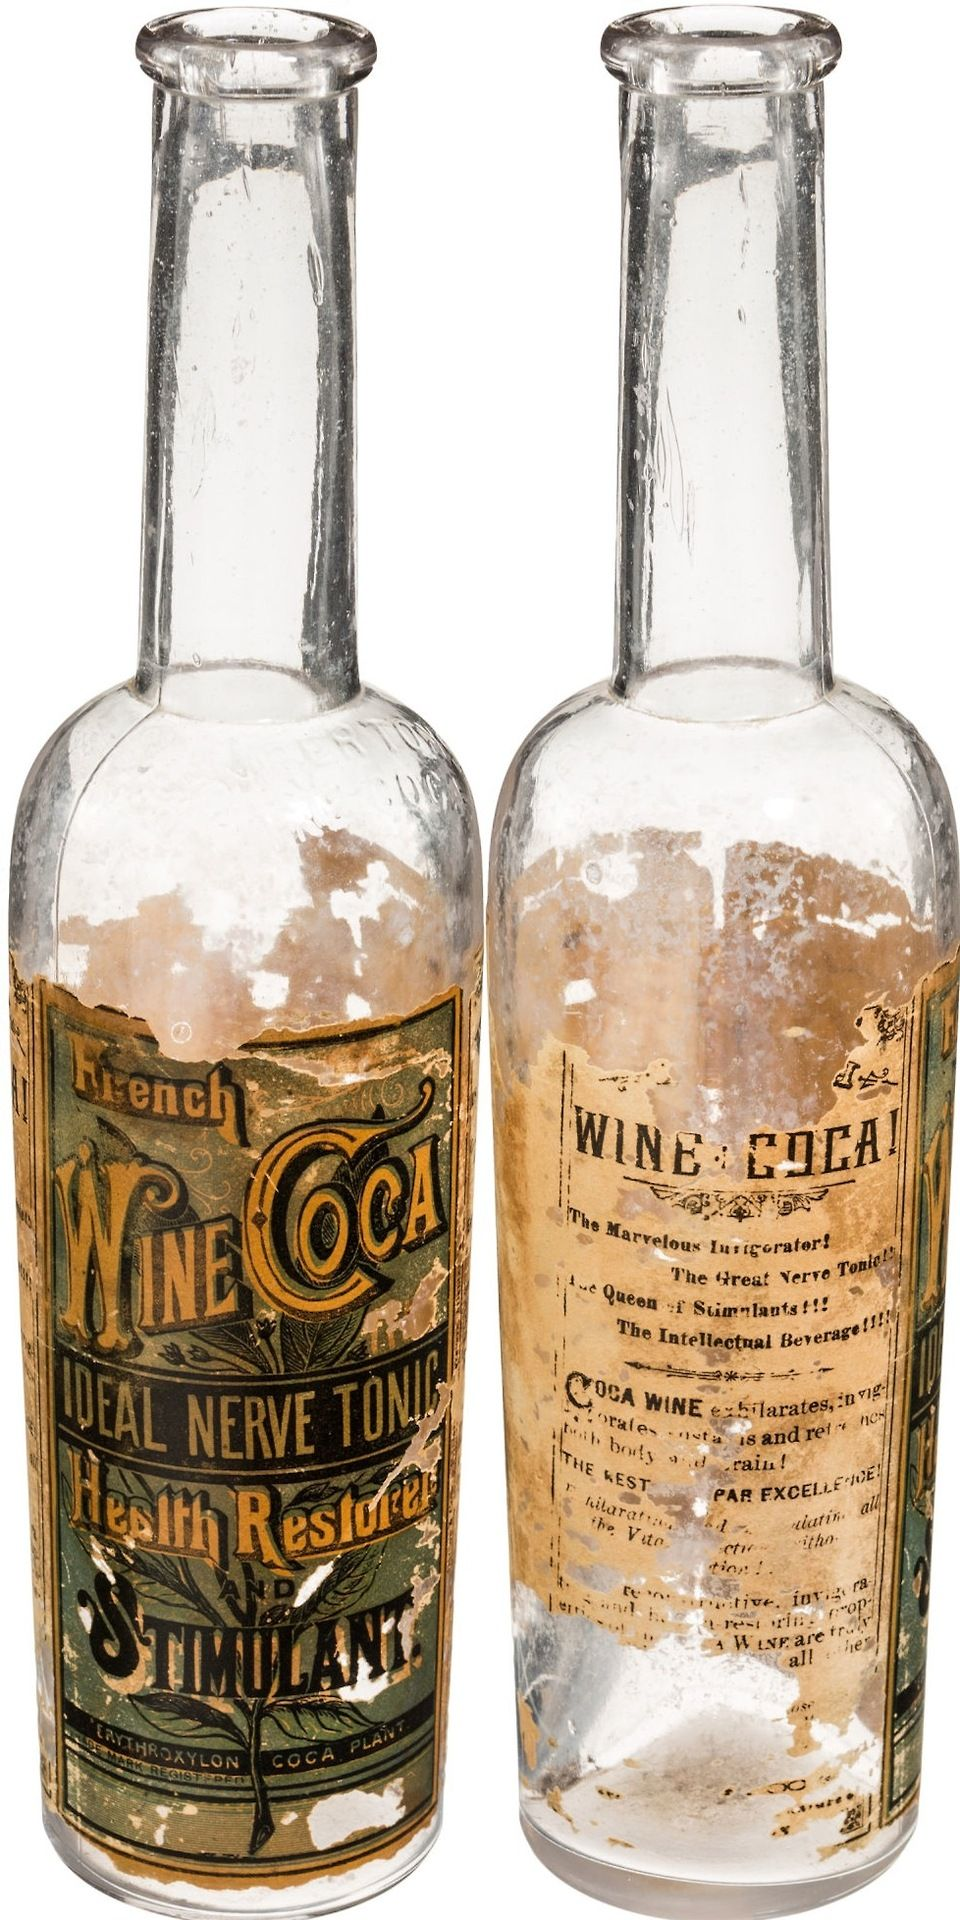 Pemberton's French Wine Coca. Incvented by John Stith Pemberton in 1885. It contained a mixture of Peruvian coca leaves, kola nut, damiana, and cocaethylene (cocaine mixed with alcohol). During the prohibition in 1886 they replaced the wine with sugar syrup and it changed name to Coca Cola.